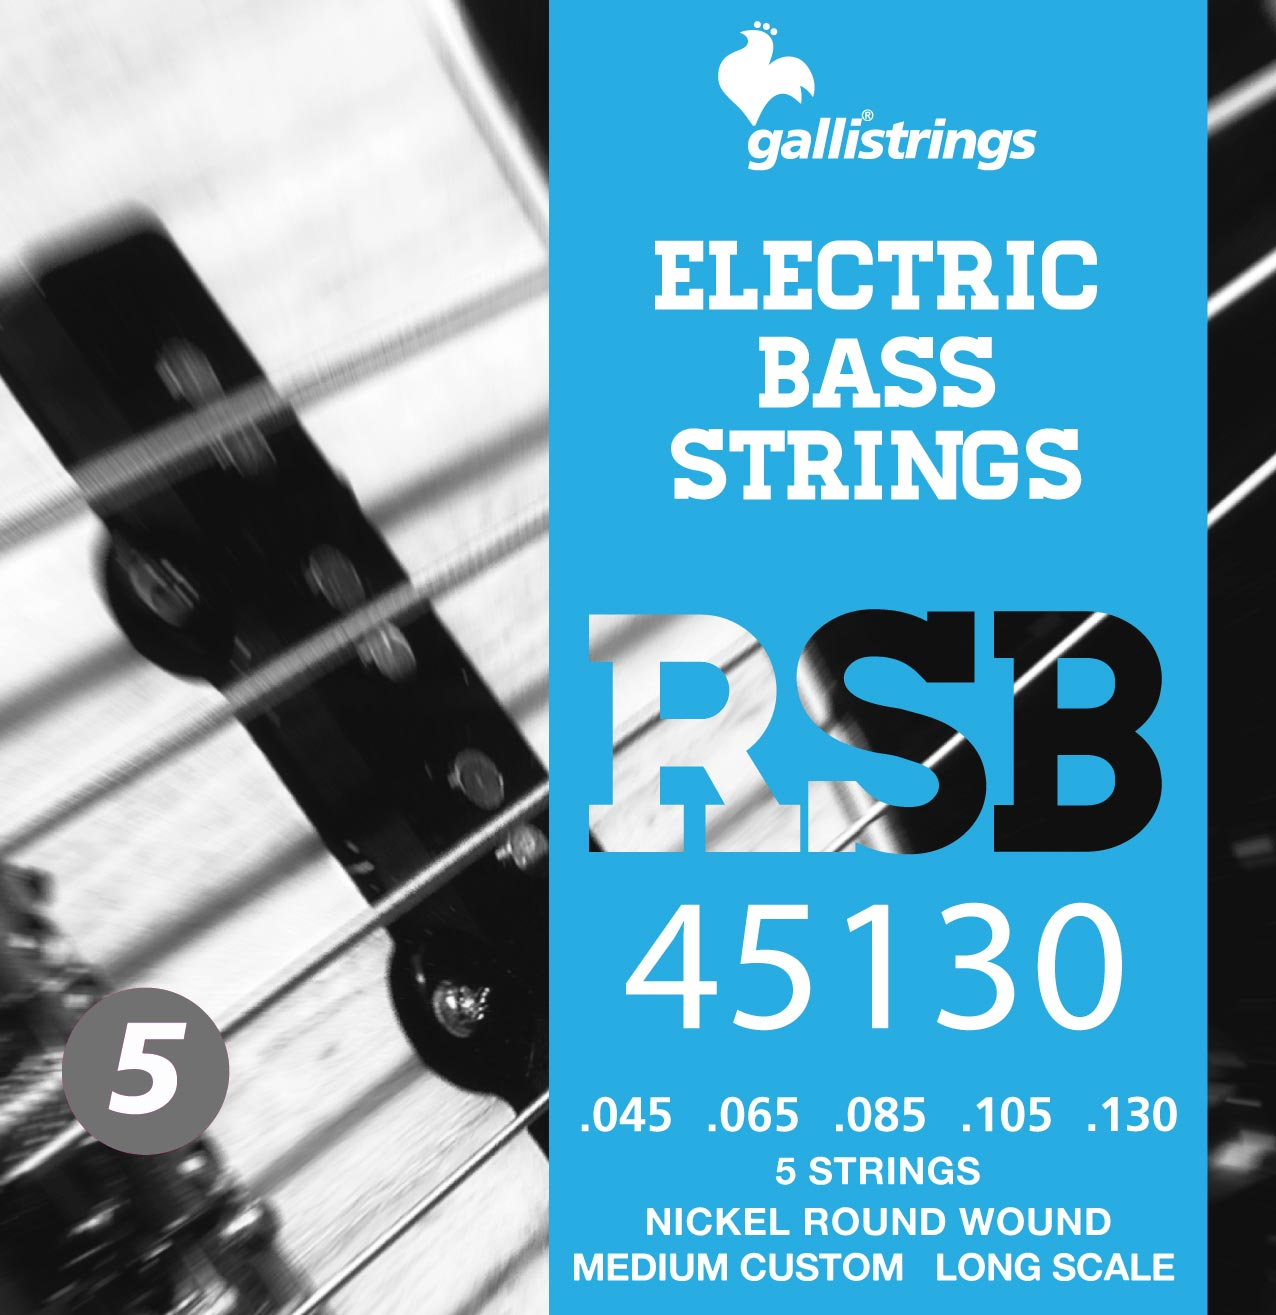 RSB45130 5 strings Medium Custom